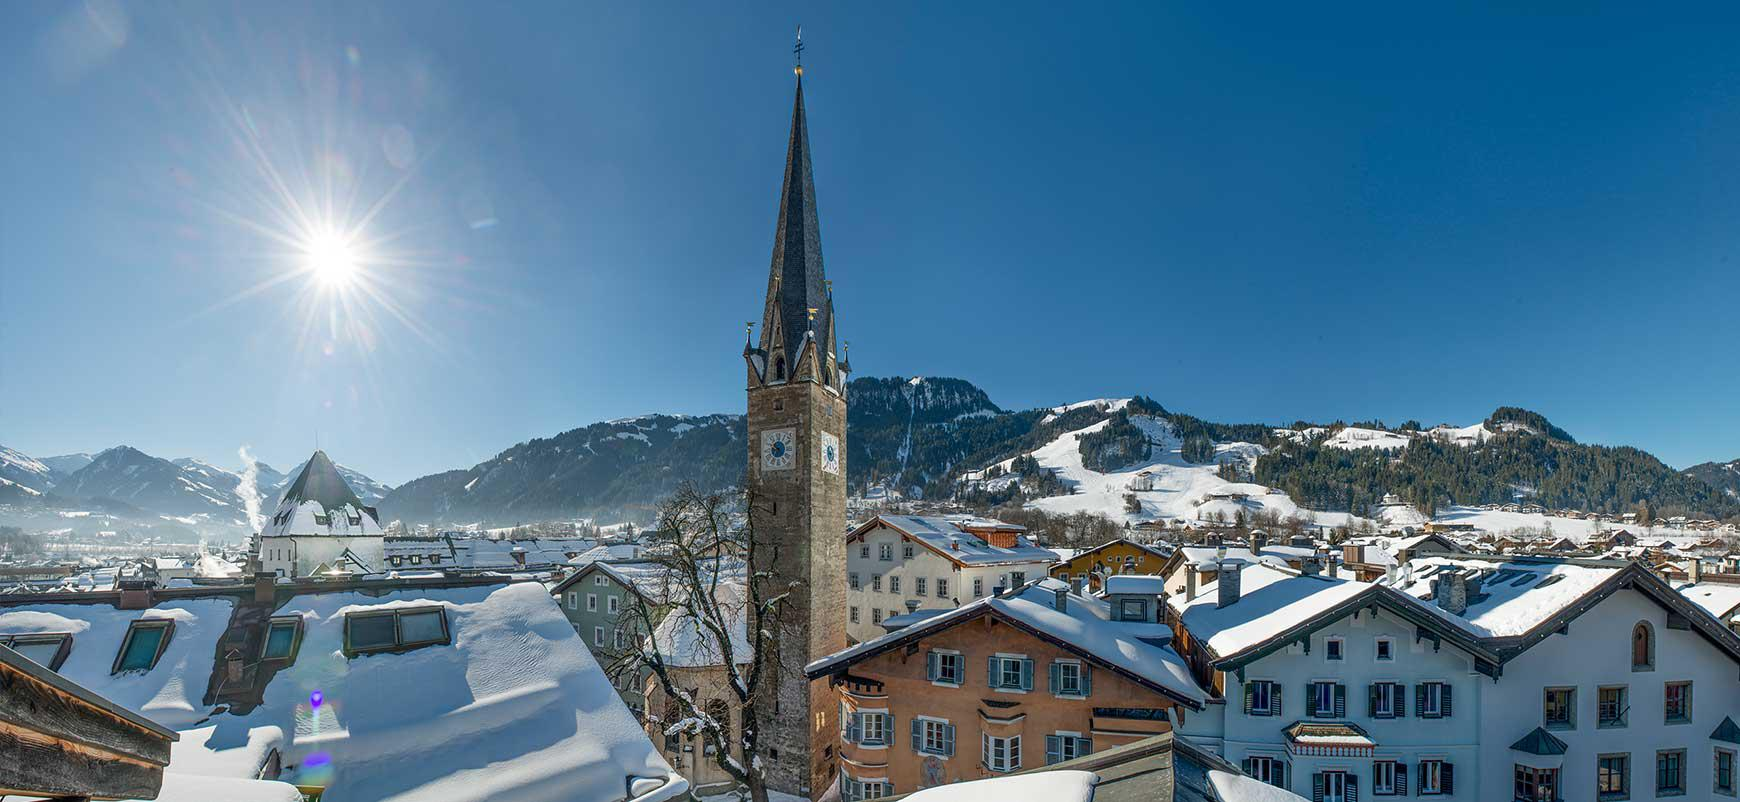 Popular Hotel in finest location in Kitzbuehel